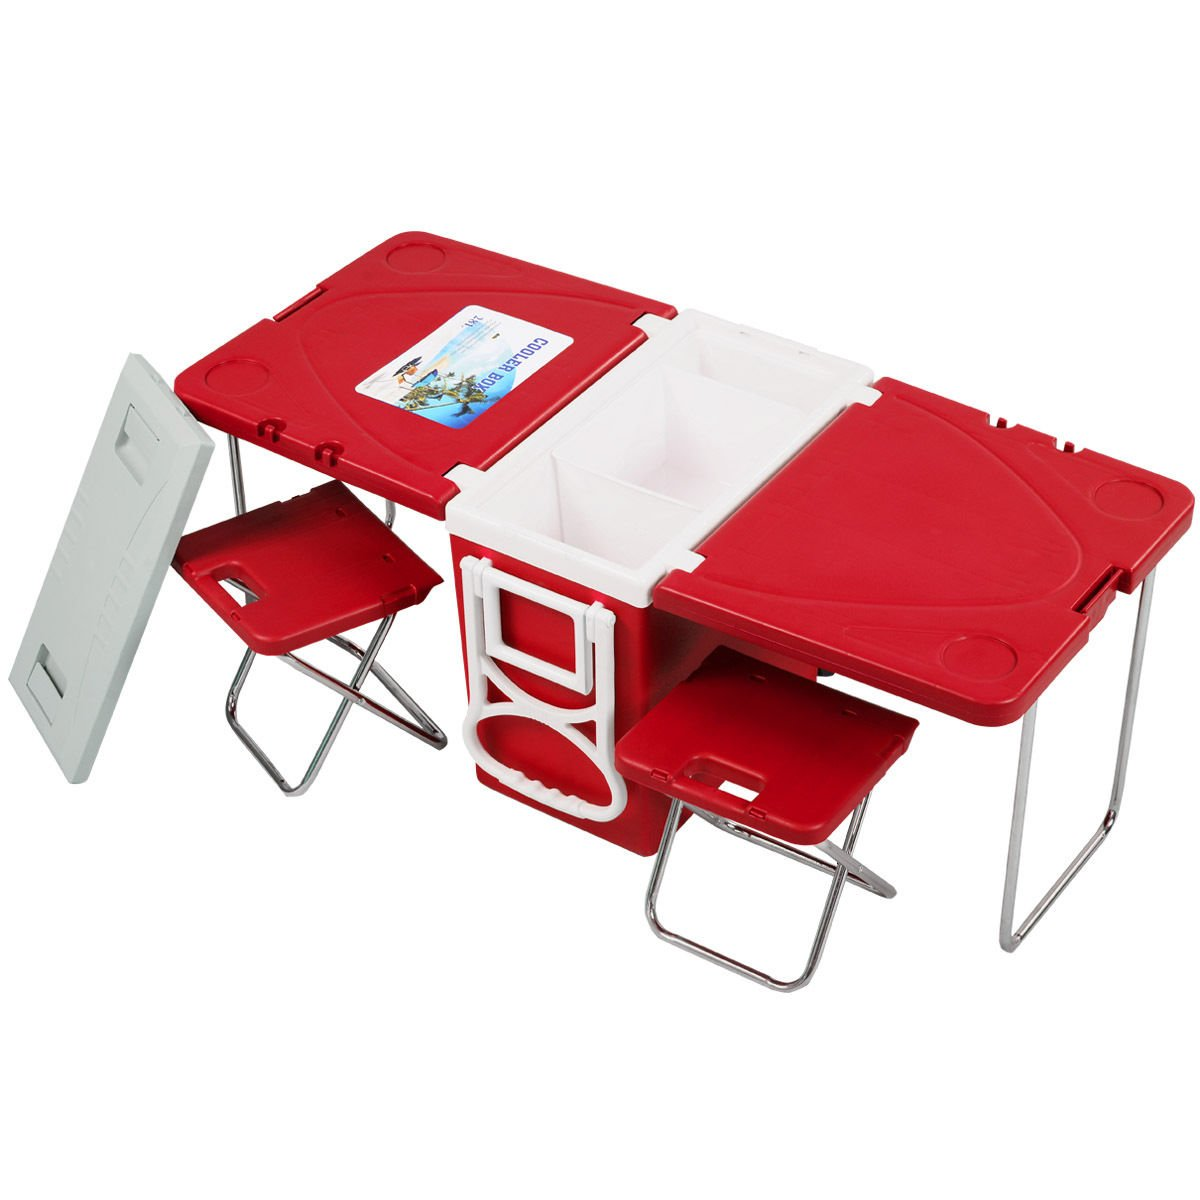 Foldable Rolling Picnic Cooler Multi Function Ultra Compact Table Box With 2 Chairs Red